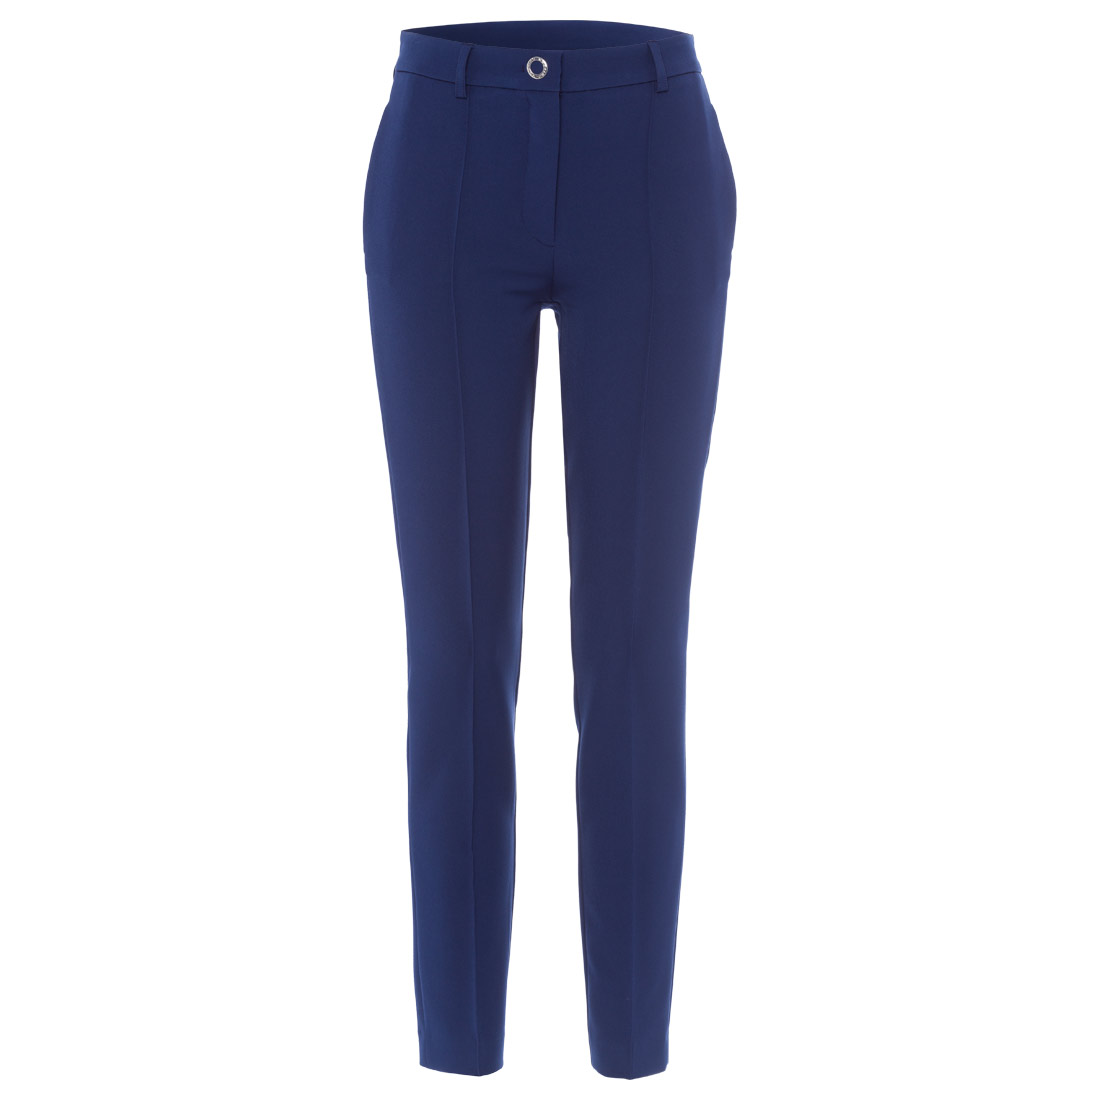 Ladies' trousers with Bi-Stretch fabric